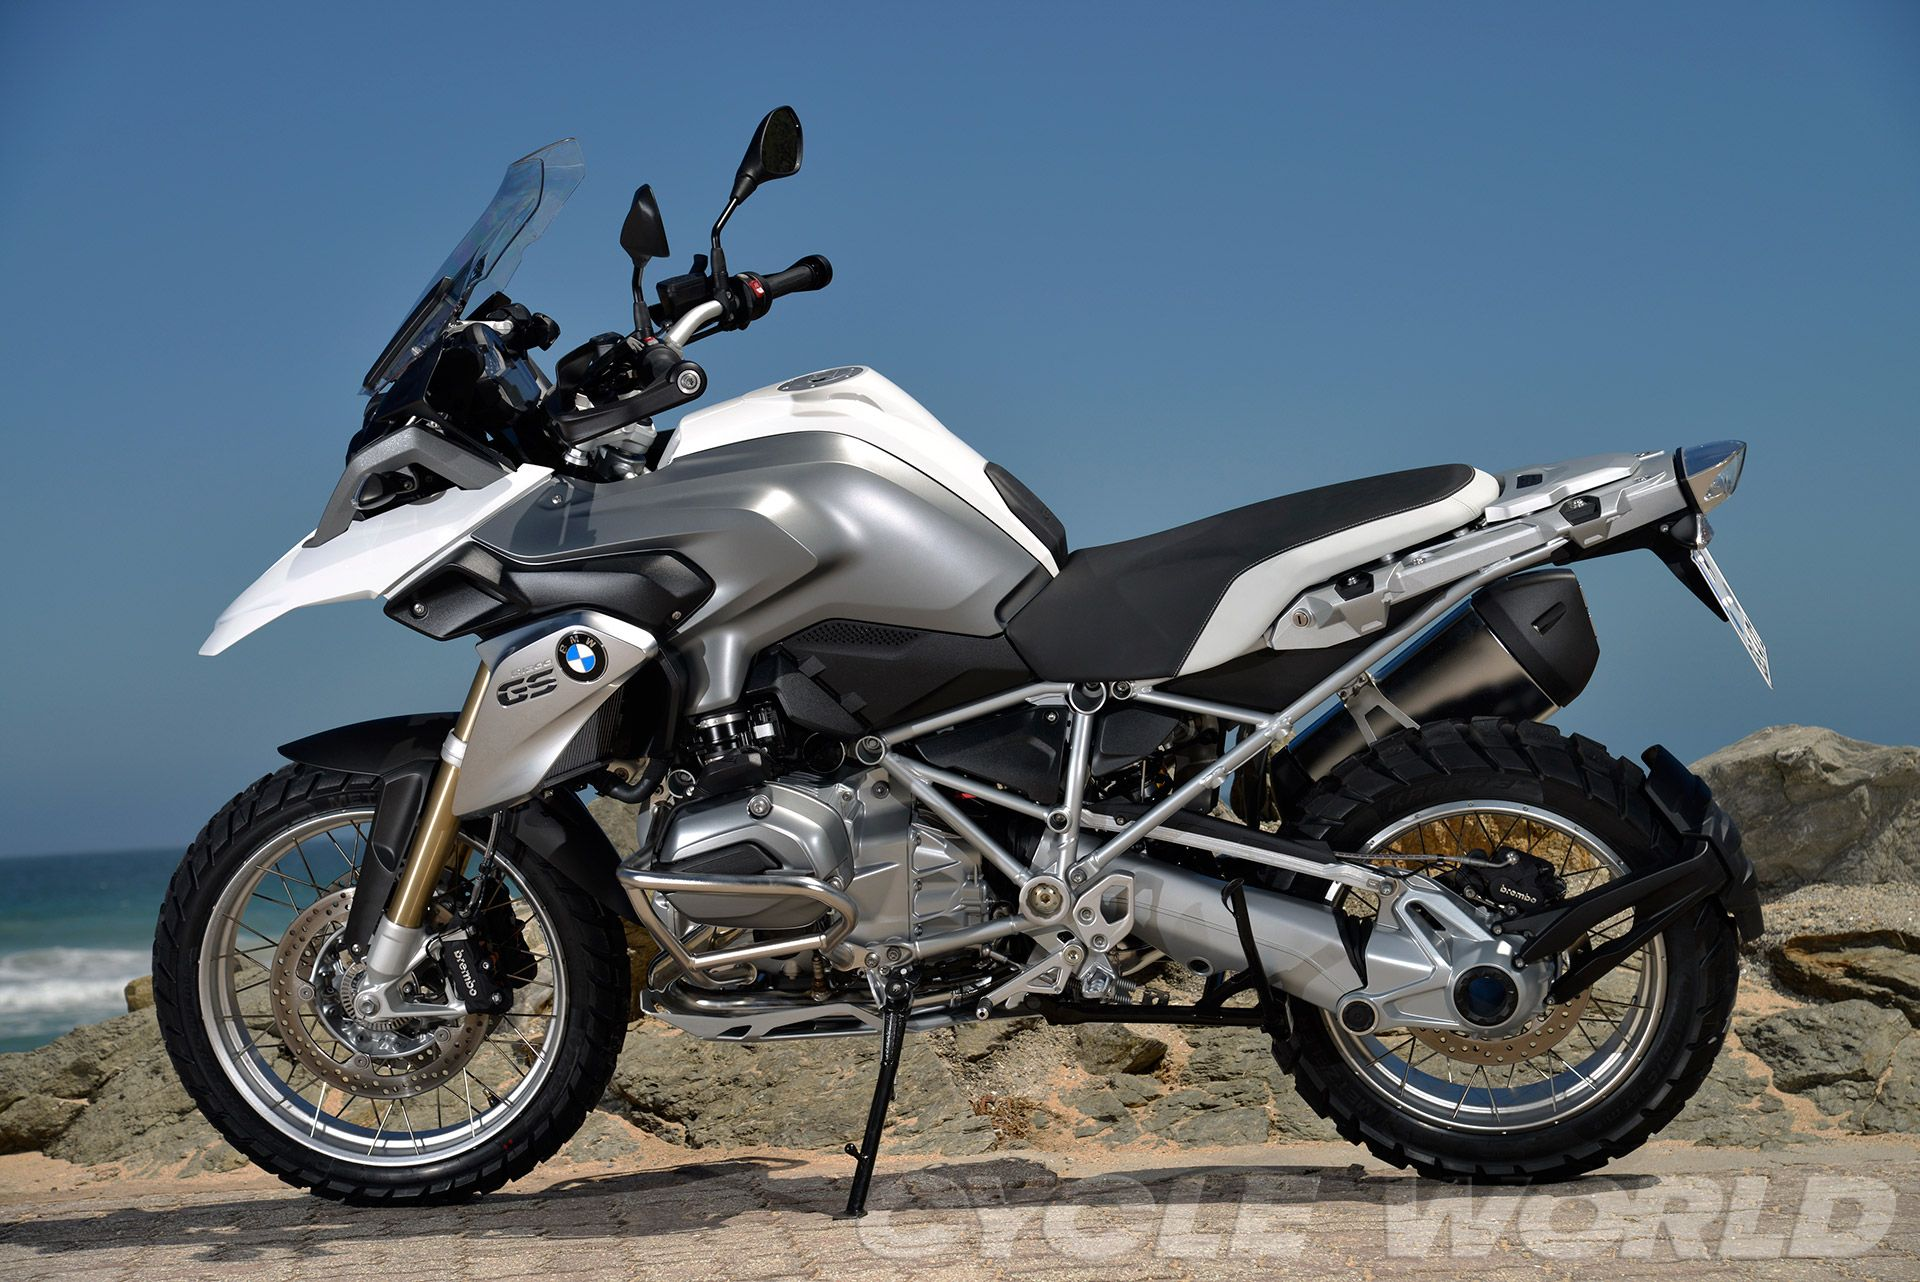 2013 Bmw R1200gs First Ride Review Photos Specs Bmw Adventure Bike Bmw Bmw Motorrad